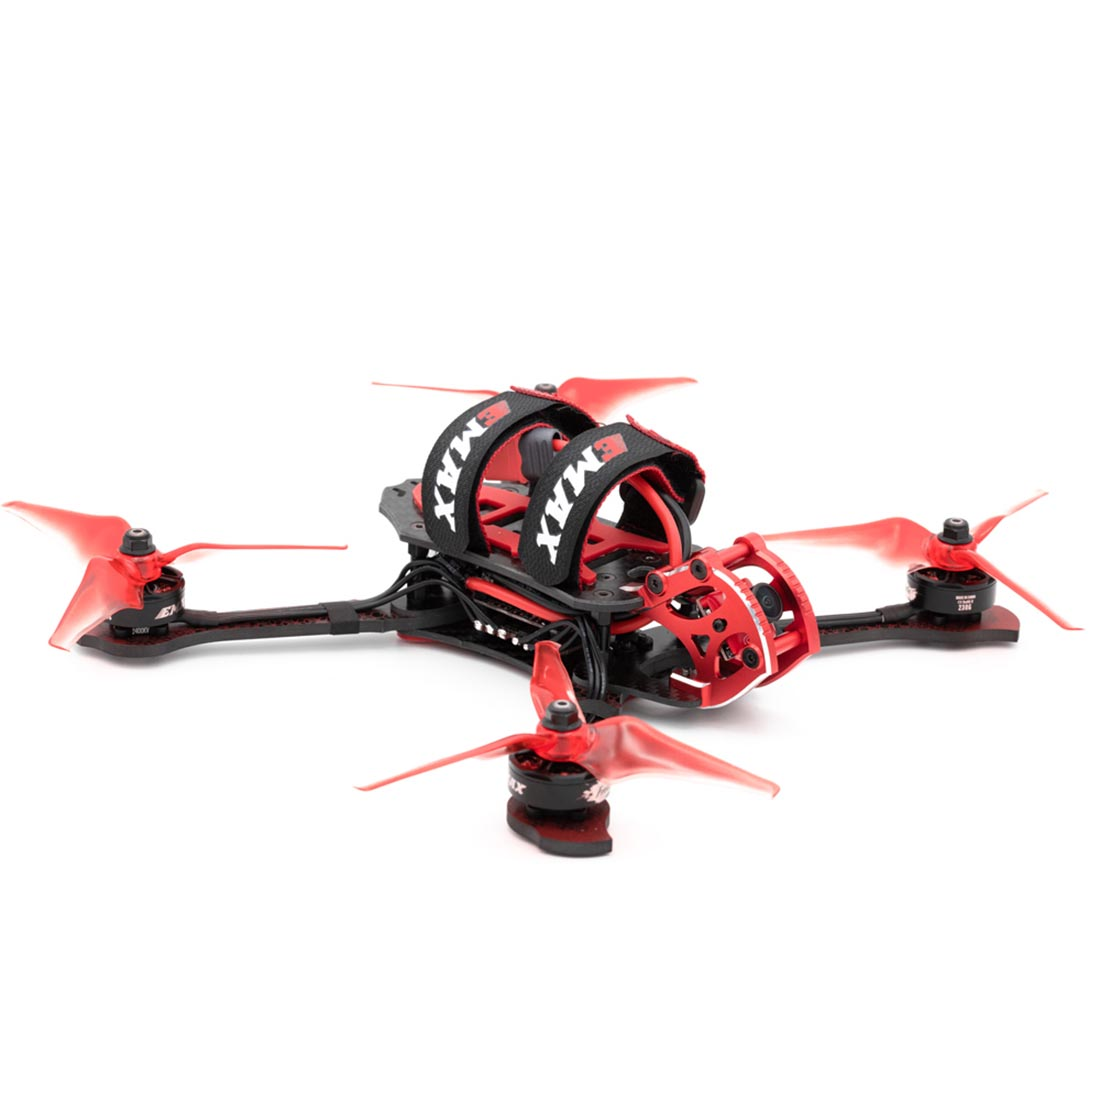 Emax Buzz /5-Inch /245mm F4 1700KV 5-6S / 2400KV 4S FPV Racing Drone Camera PNP/ BNF w XM+ Receiver for Freestyle QuadcopterEmax Buzz /5-Inch /245mm F4 1700KV 5-6S / 2400KV 4S FPV Racing Drone Camera PNP/ BNF w XM+ Receiver for Freestyle Quadcopter